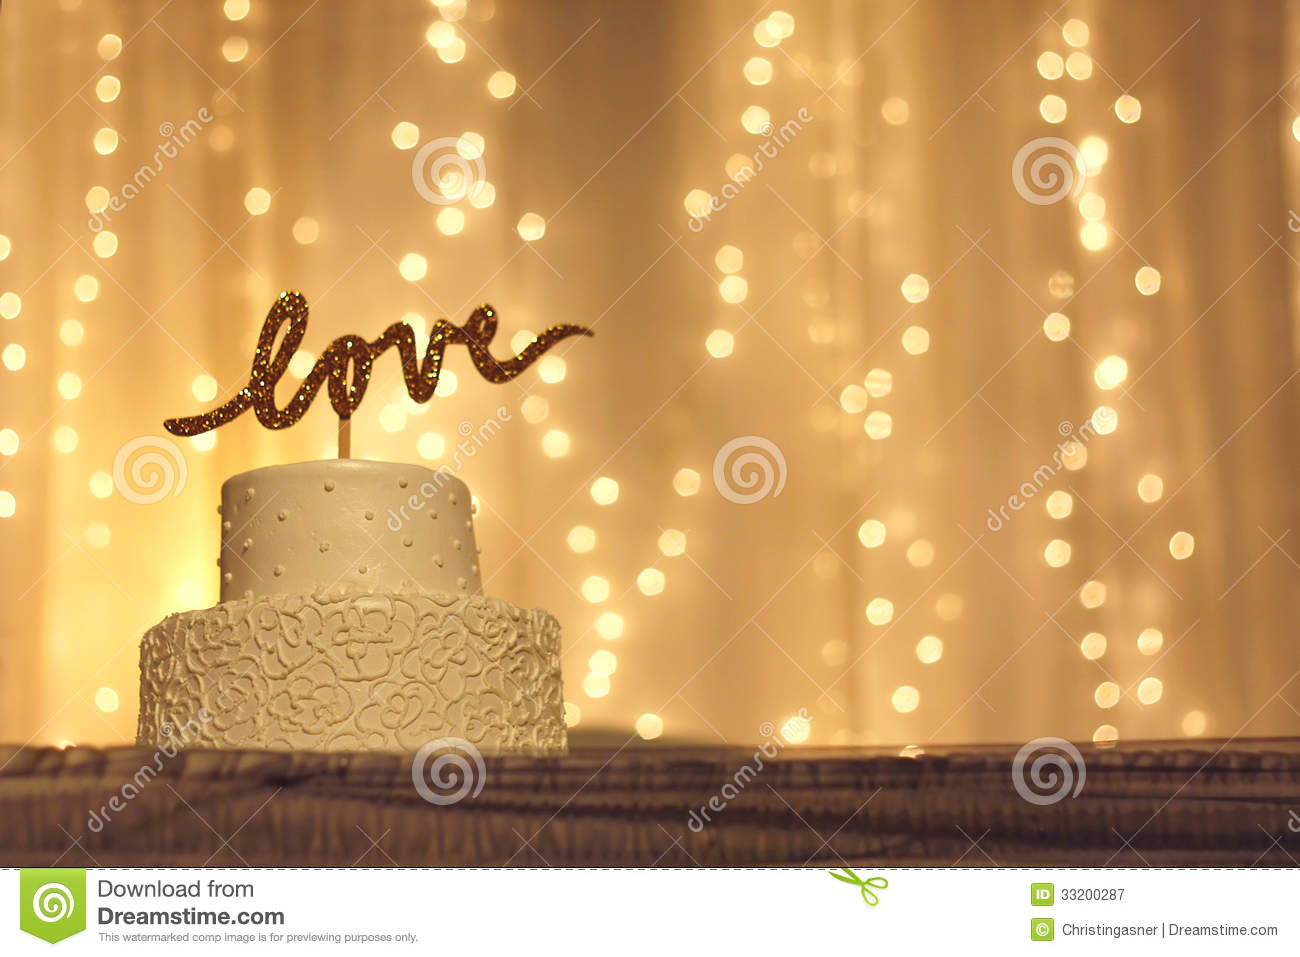 wedding cake with love topper stock image image of ambiance dessert 33200287. Black Bedroom Furniture Sets. Home Design Ideas